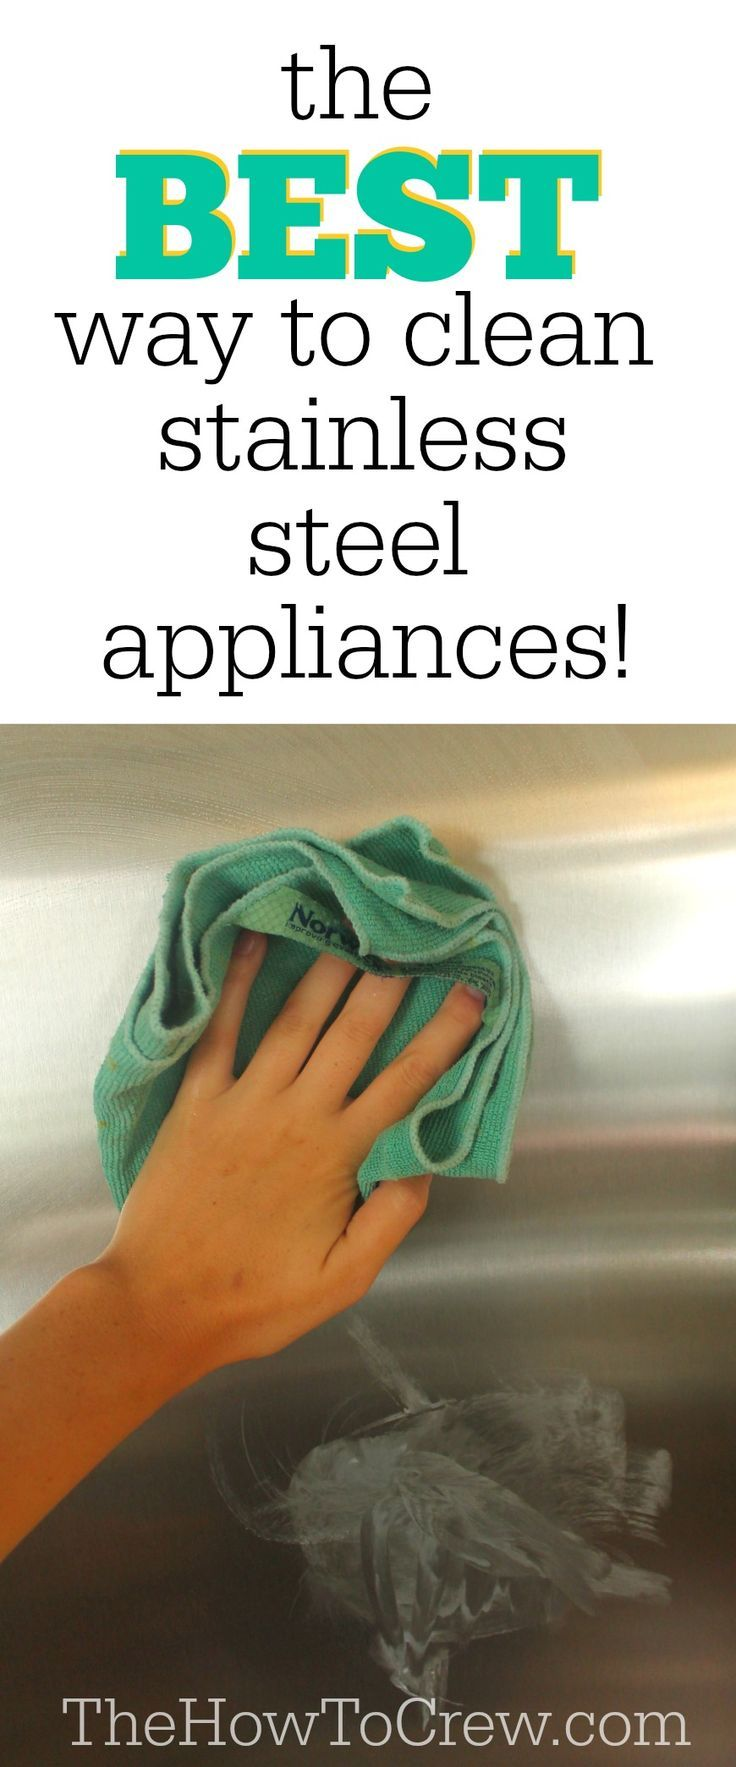 The Best Way To Clean Stainless Steel Appliances From Http